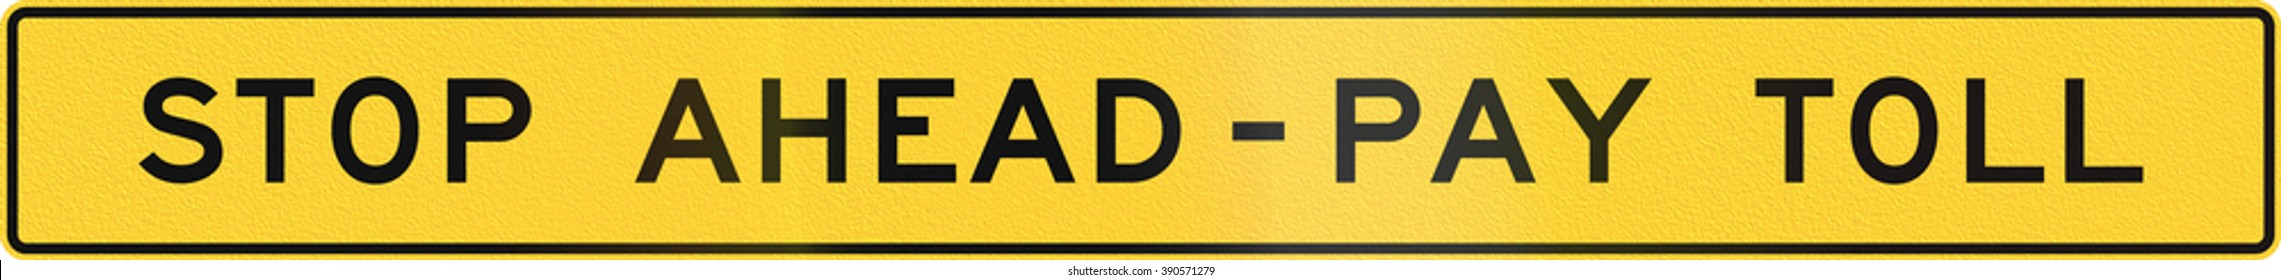 United States MUTCD road sign - Stop ahead pay toll.